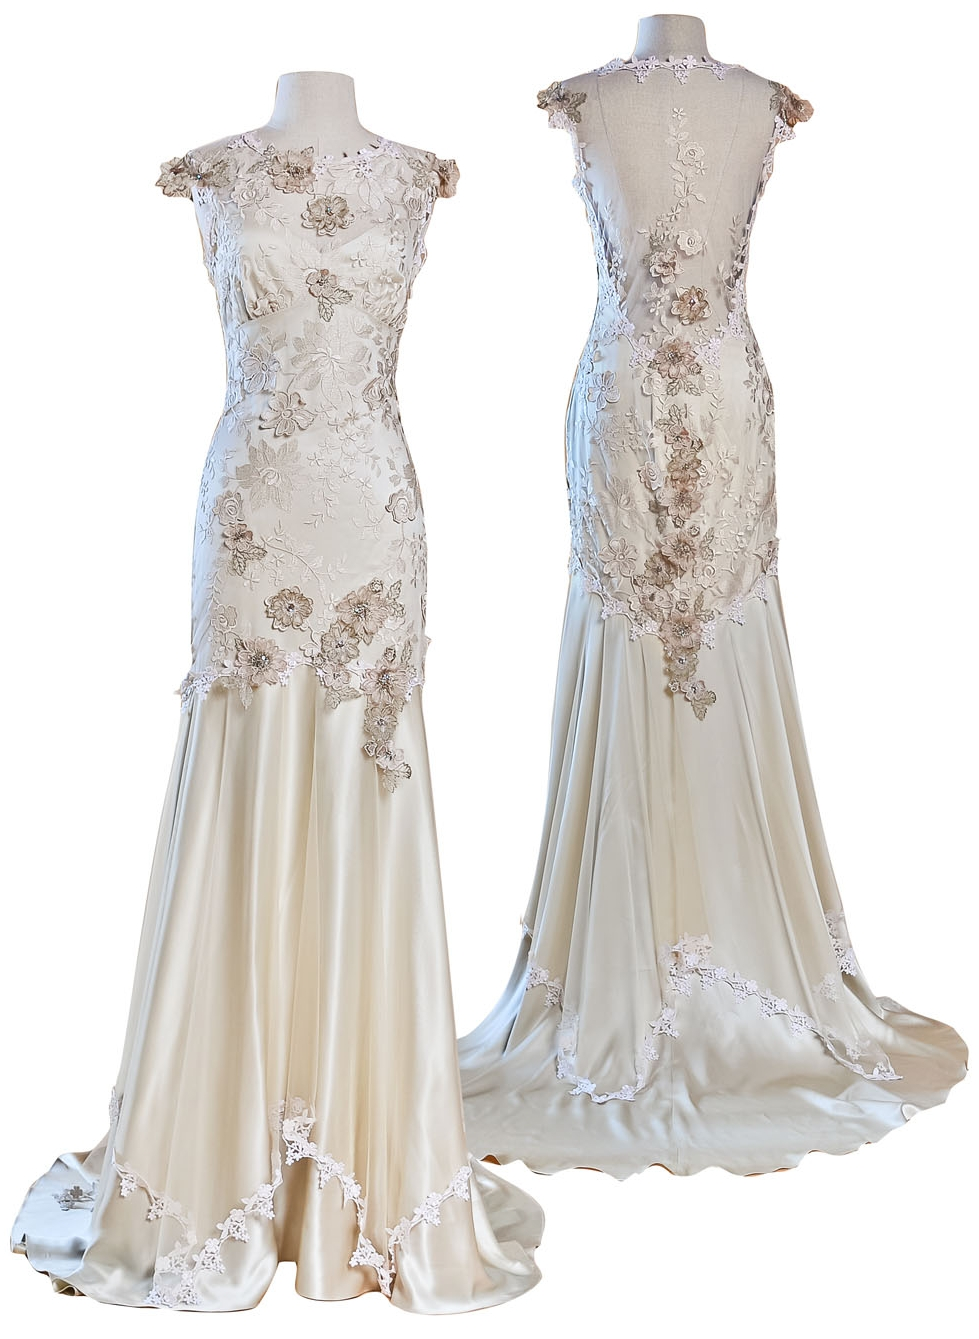 claire pettibone wedding dresses image collections